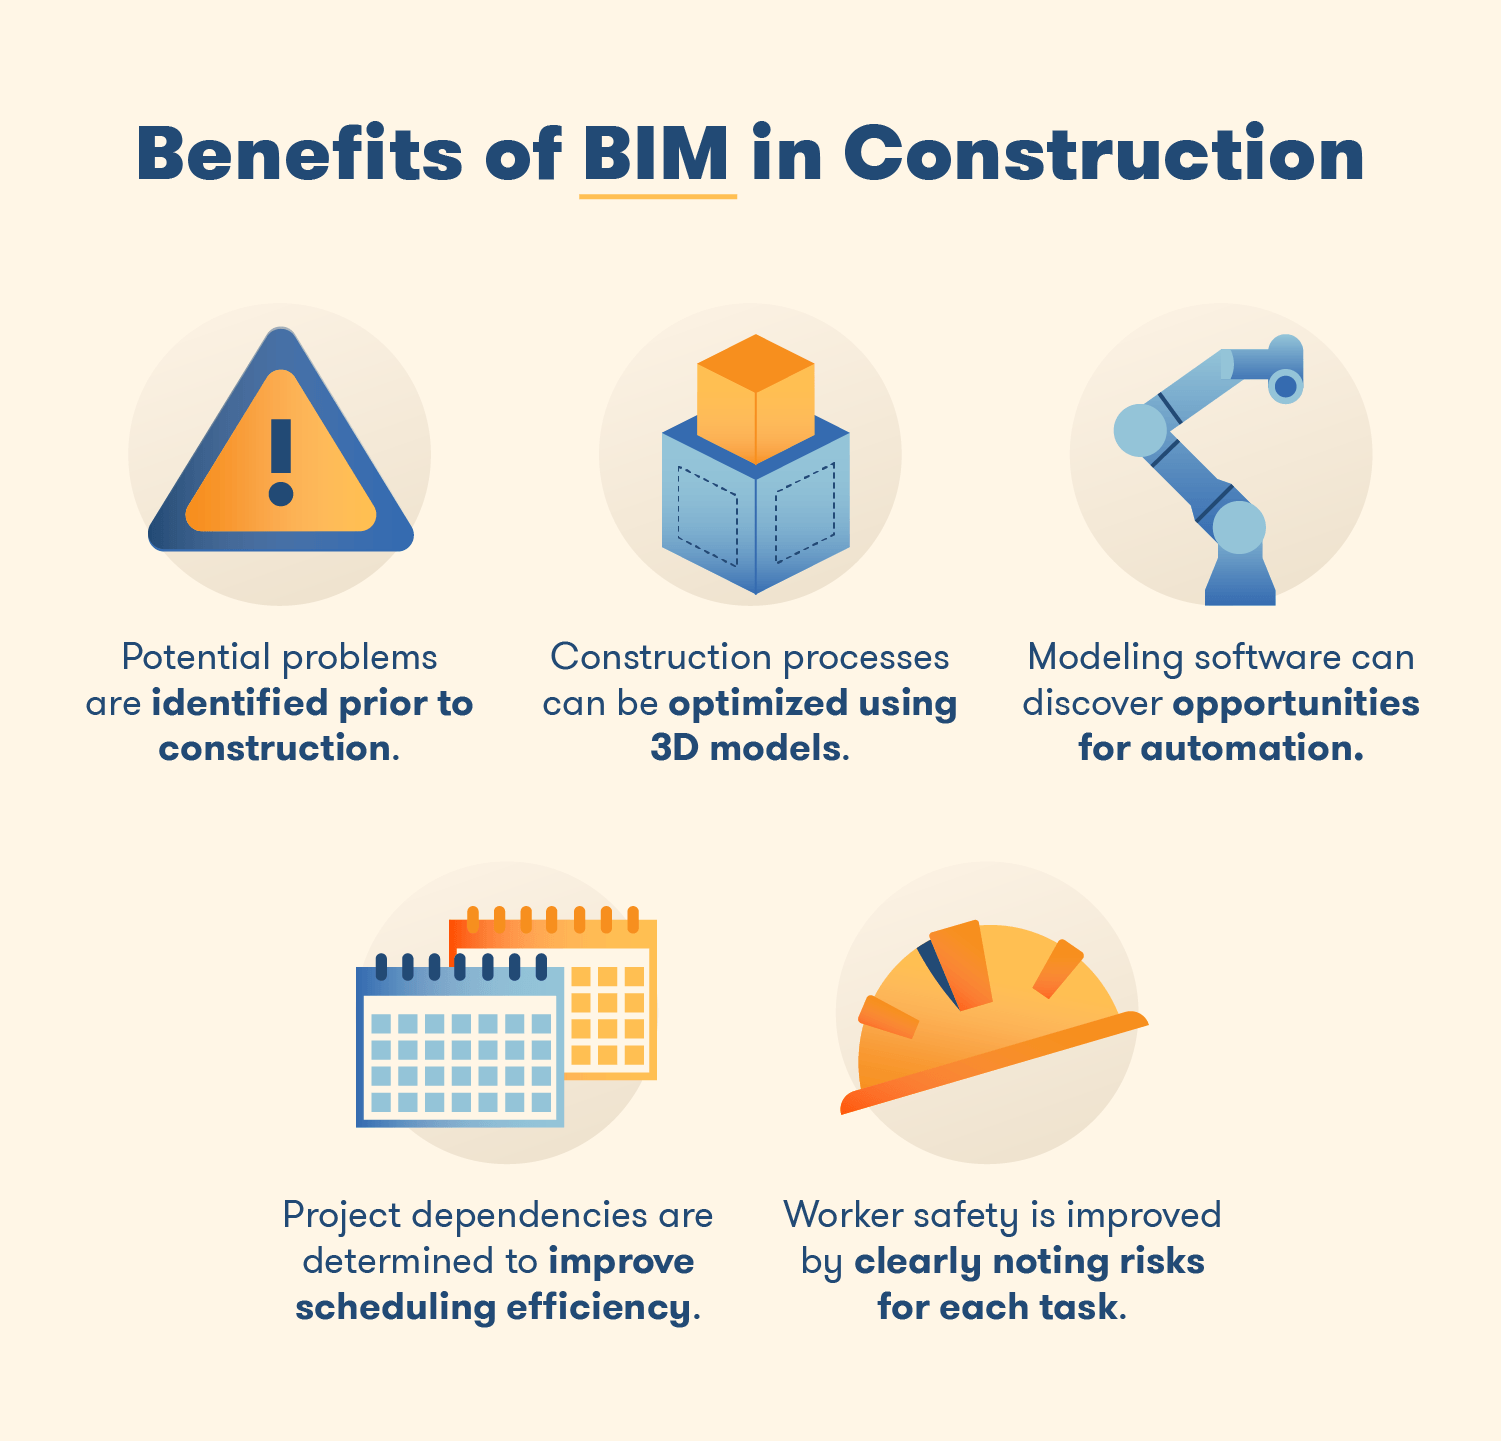 BIM's benefits to the construction industry